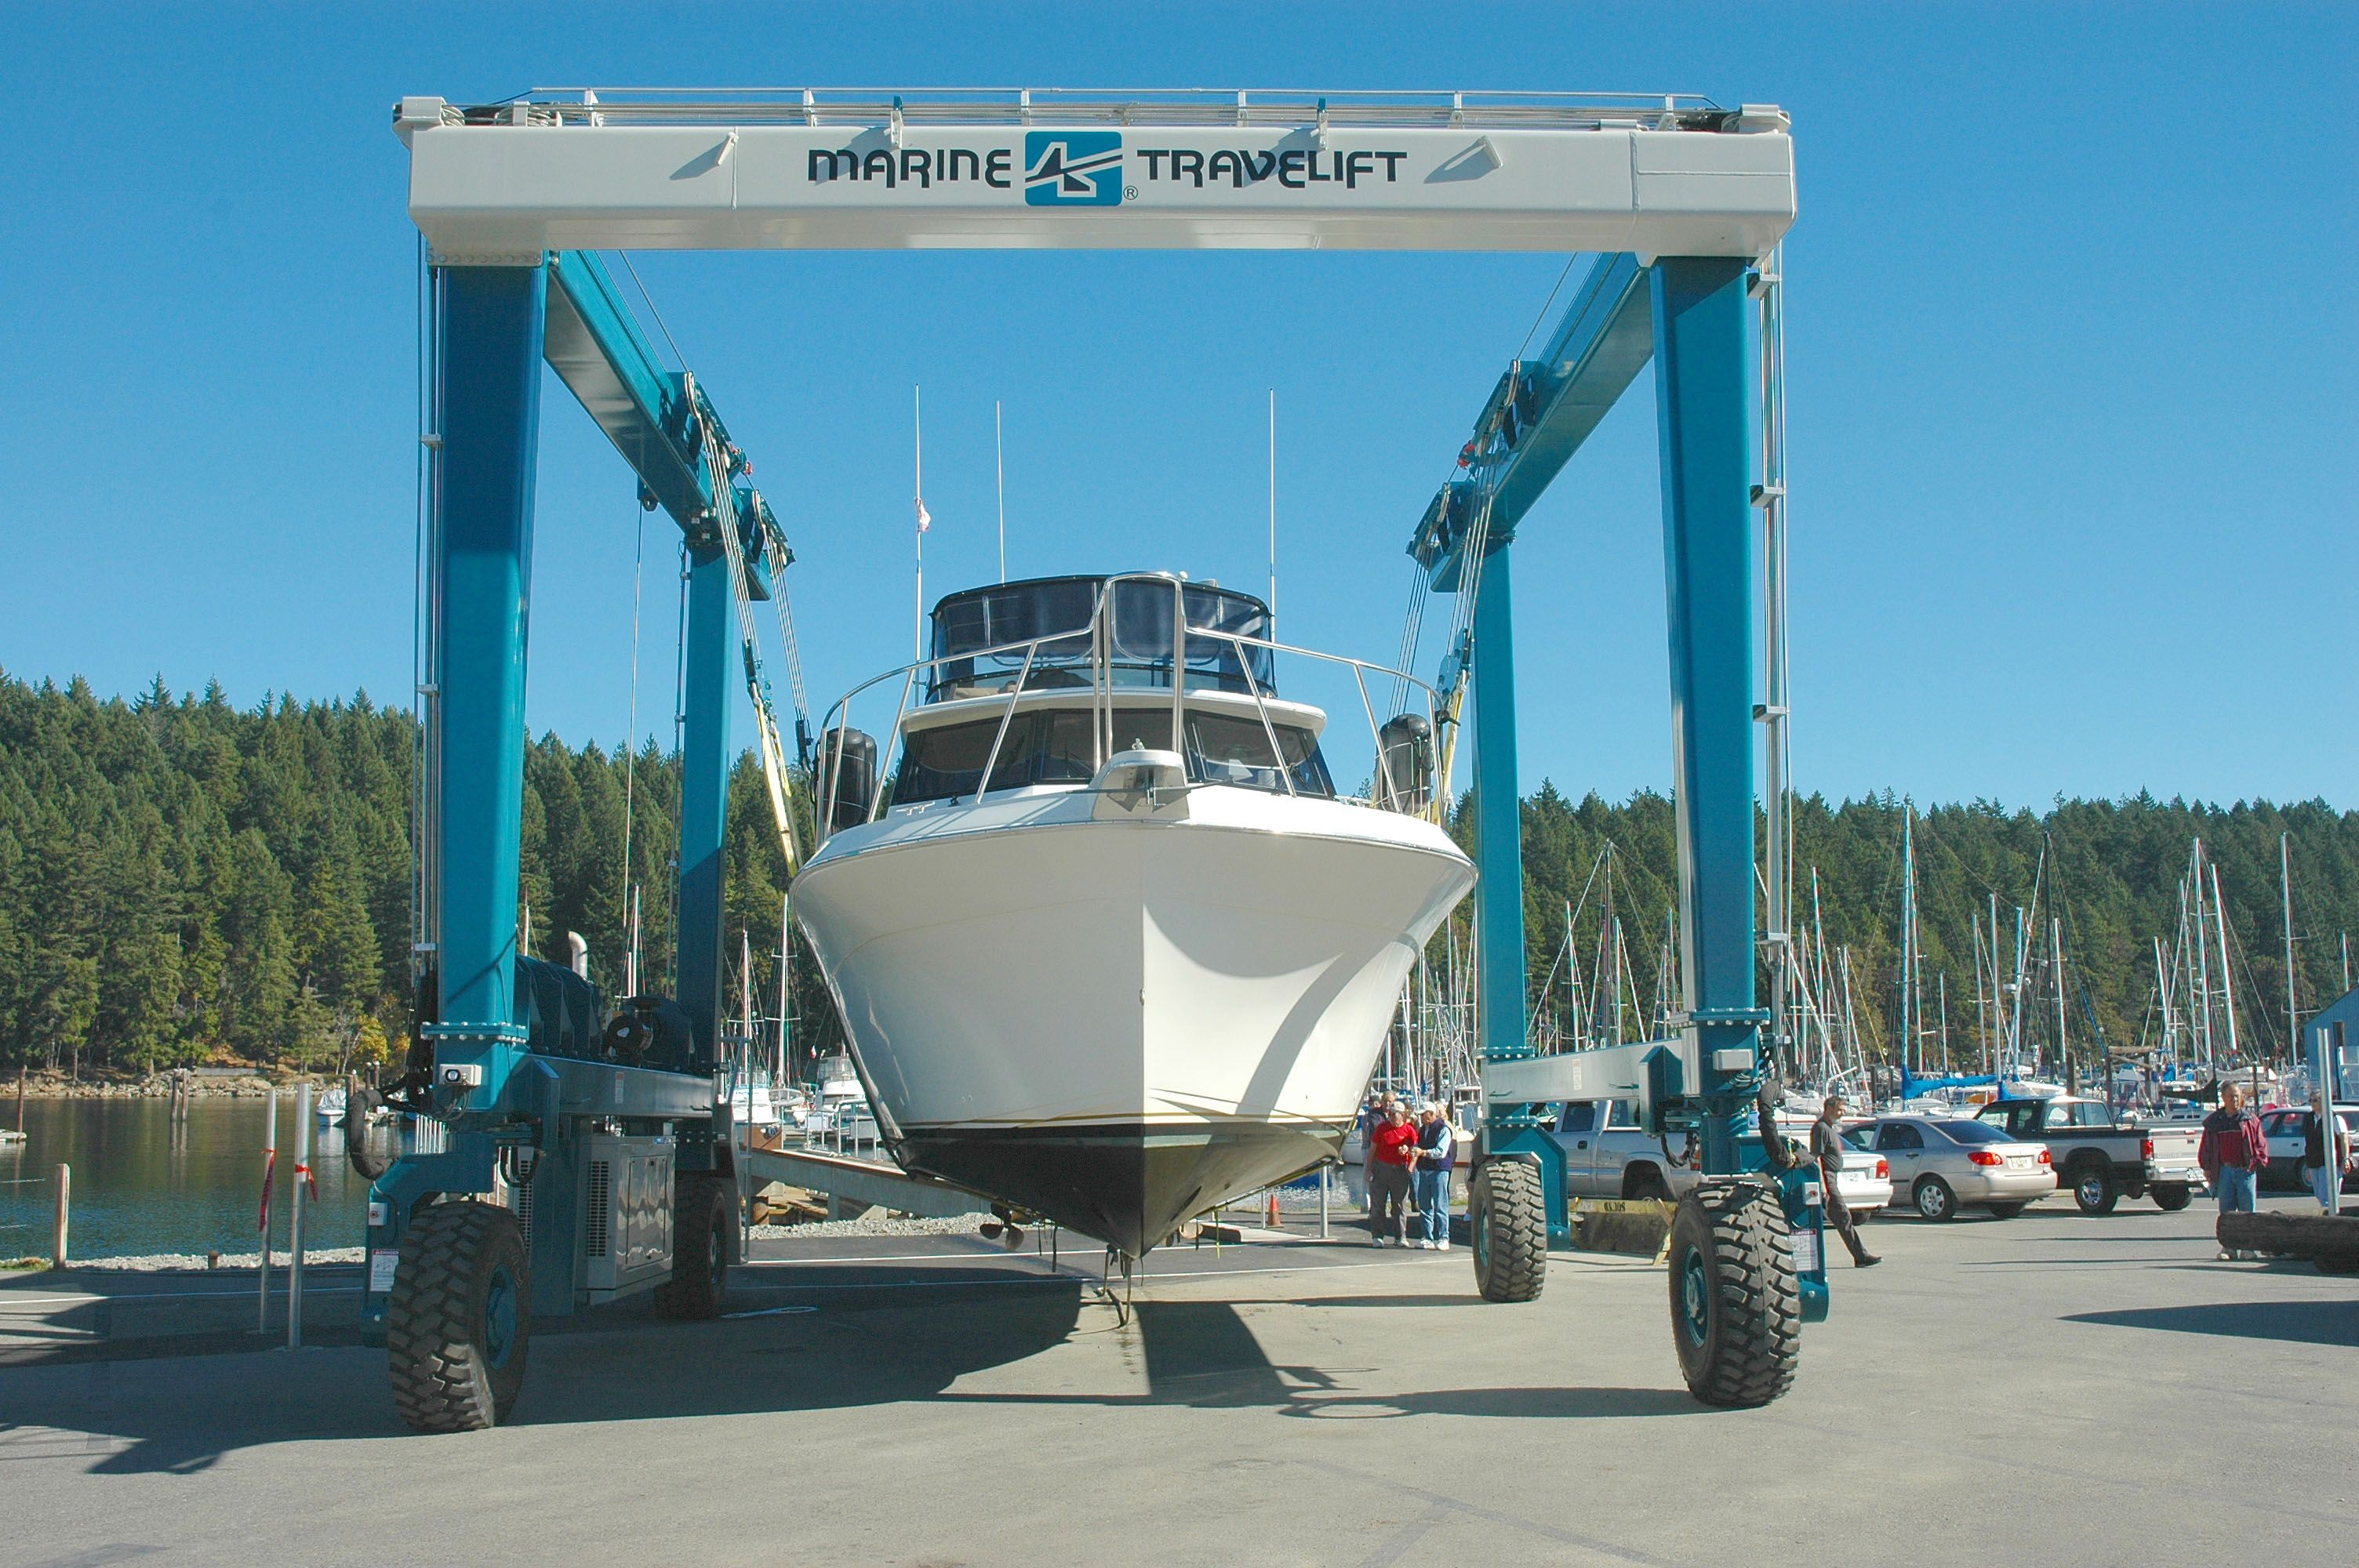 http://www.nanaimoboatyard.ca/yacht-services-2/  Nanaimo Yacht Services' large on site boat repair facility allows us to offer a wide range of services for the boat owner including maintenance, repairs and new installations.